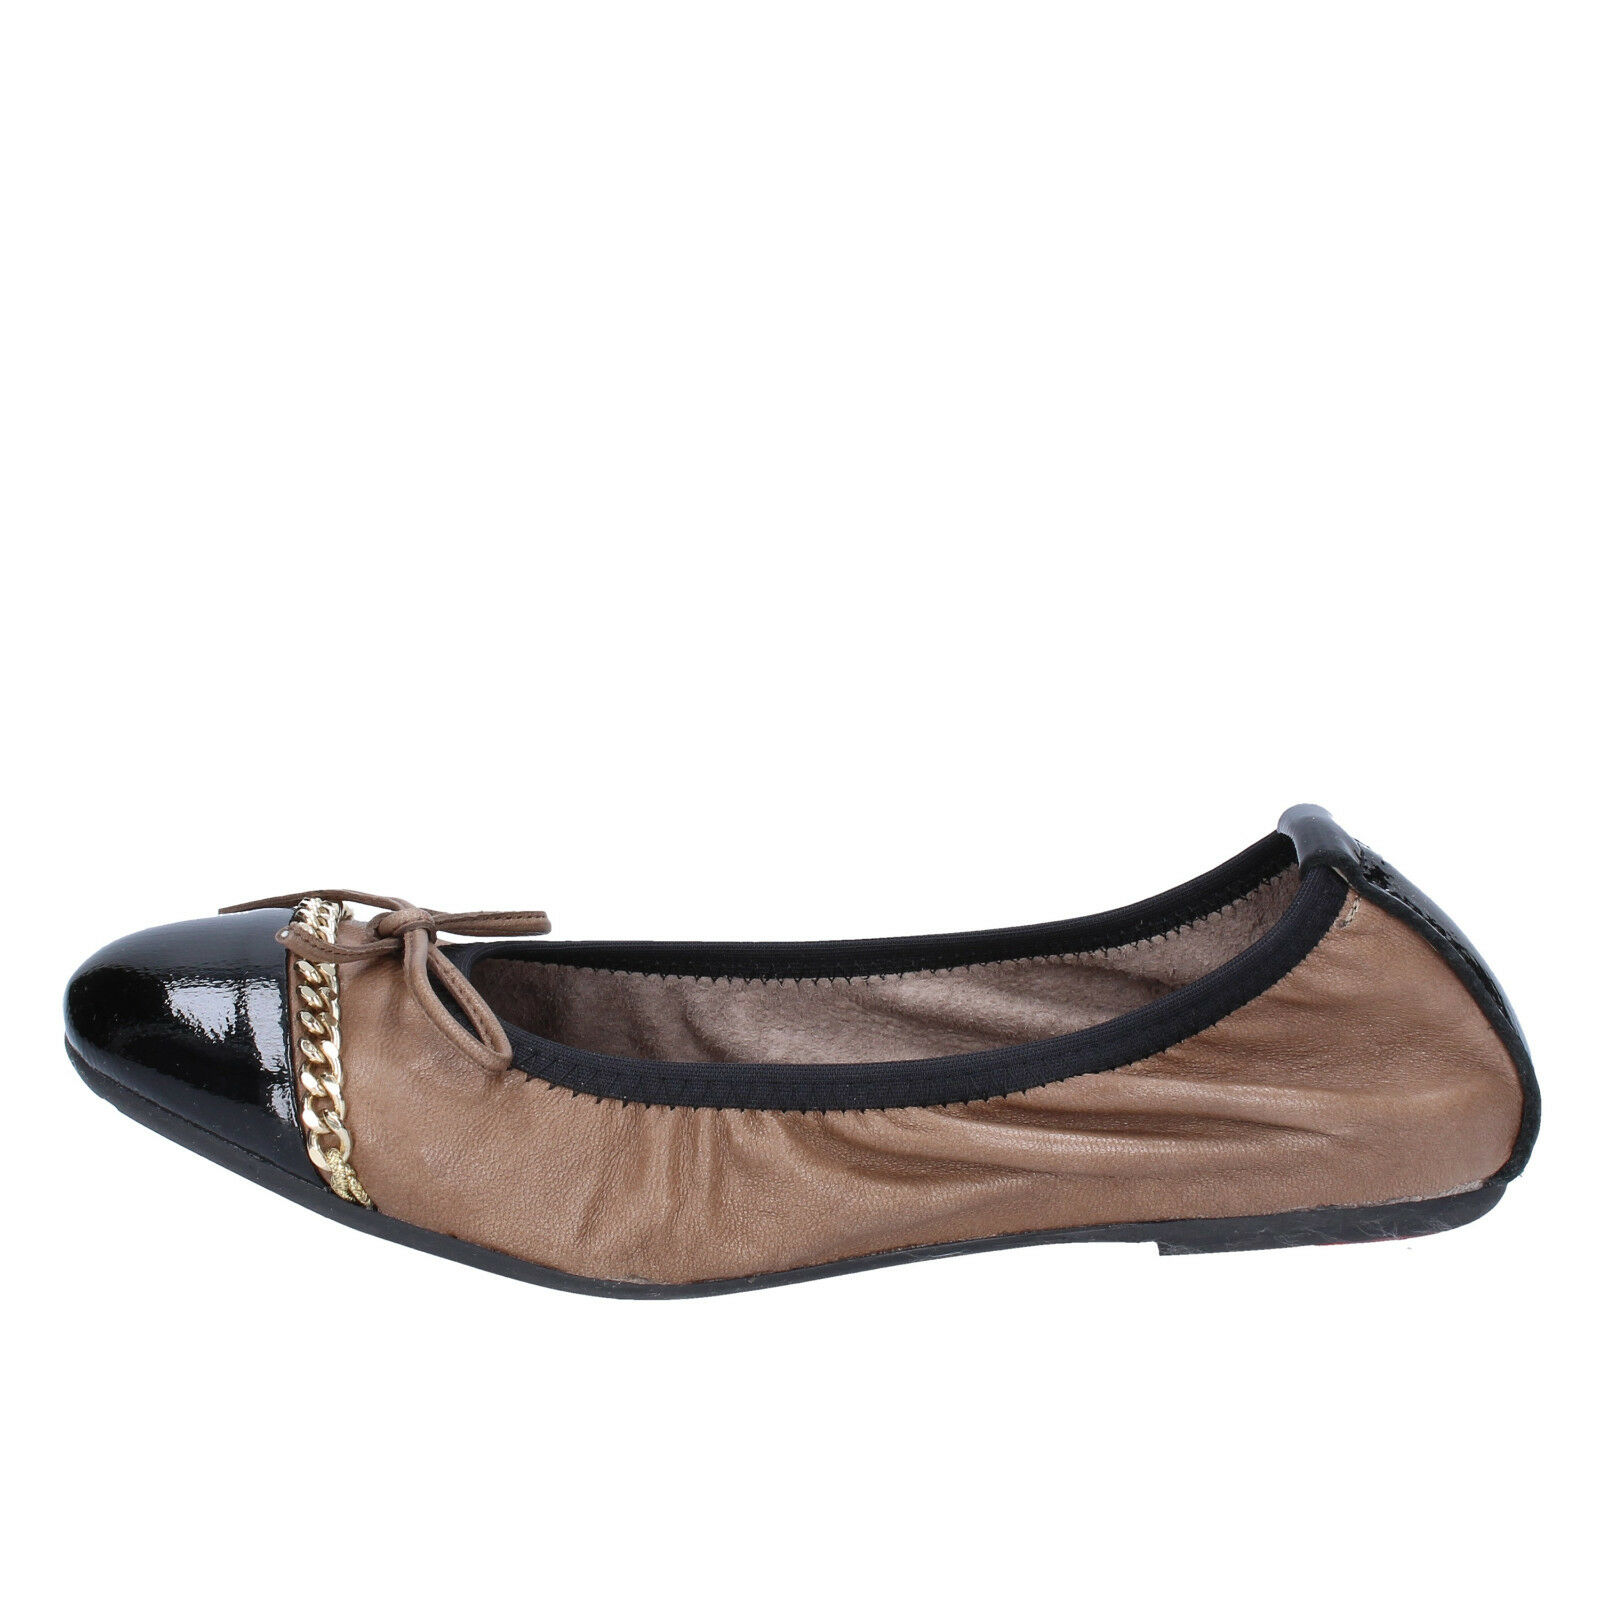 mujer zapatos CROWN 3 (EU 36) ballet flats negro beige leather BX641-36